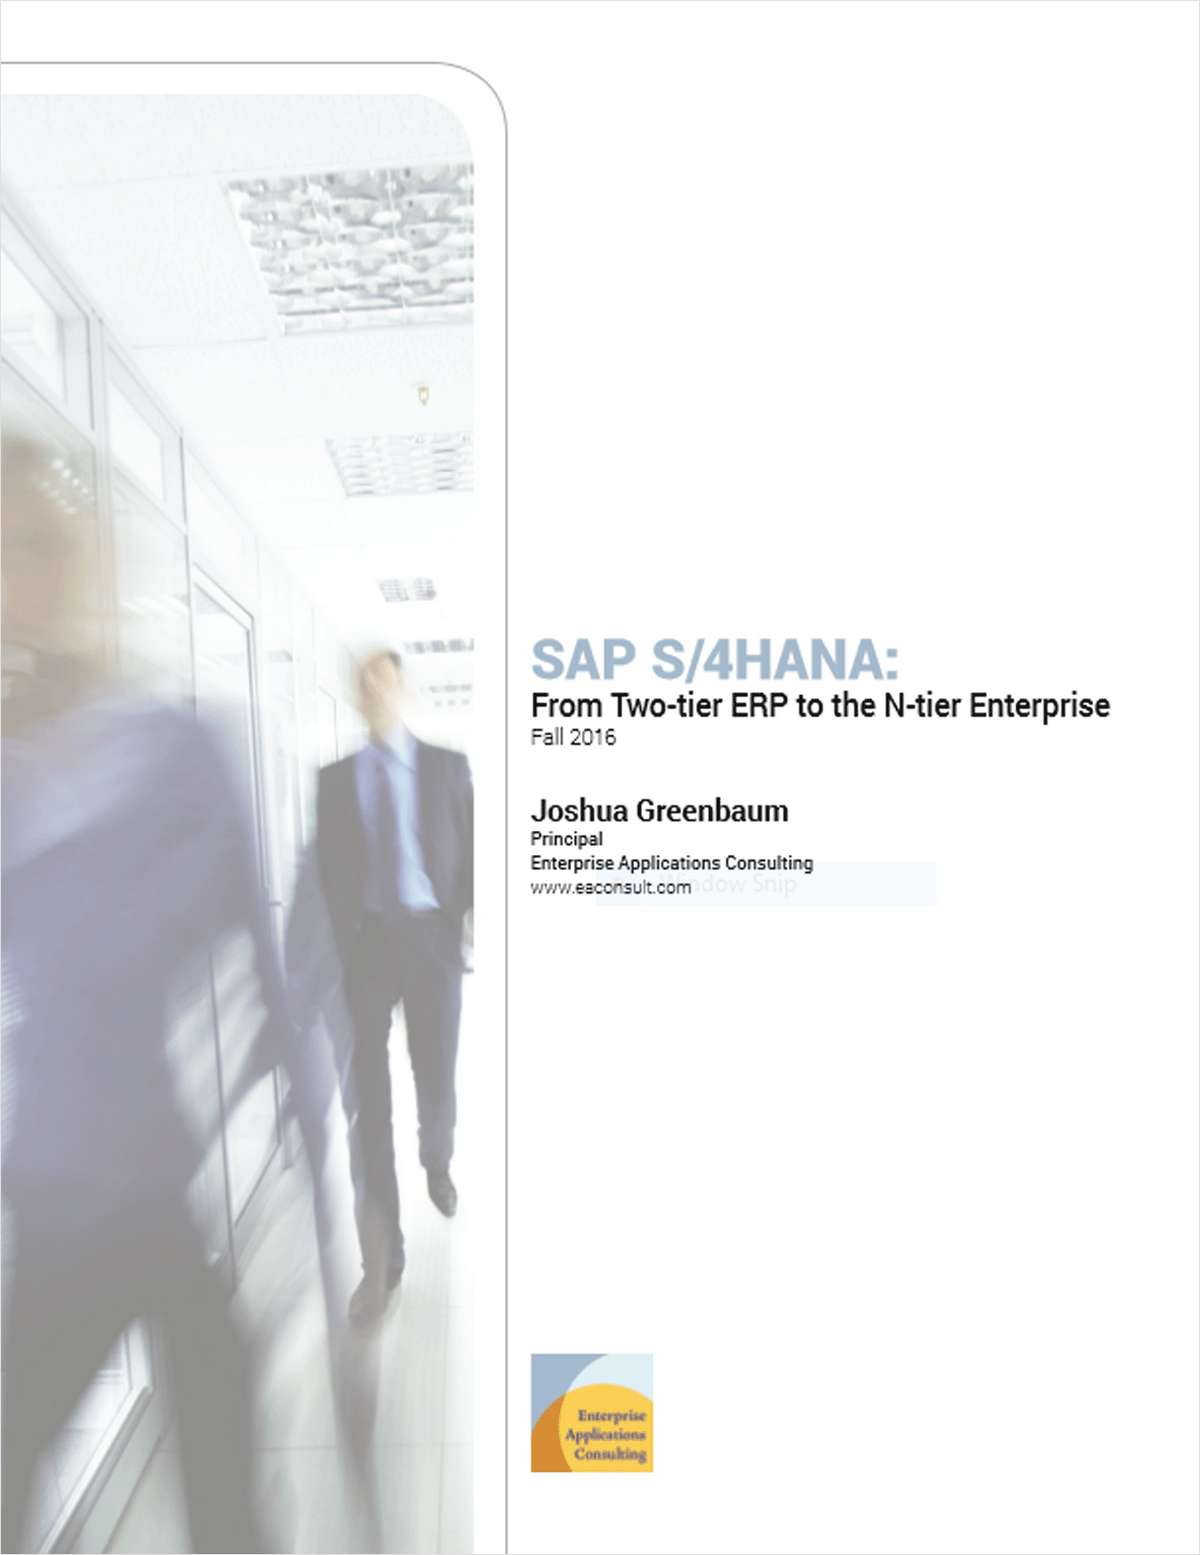 SAP S/4HANA: From Two-Tier ERP to the N-Tier Enterprise